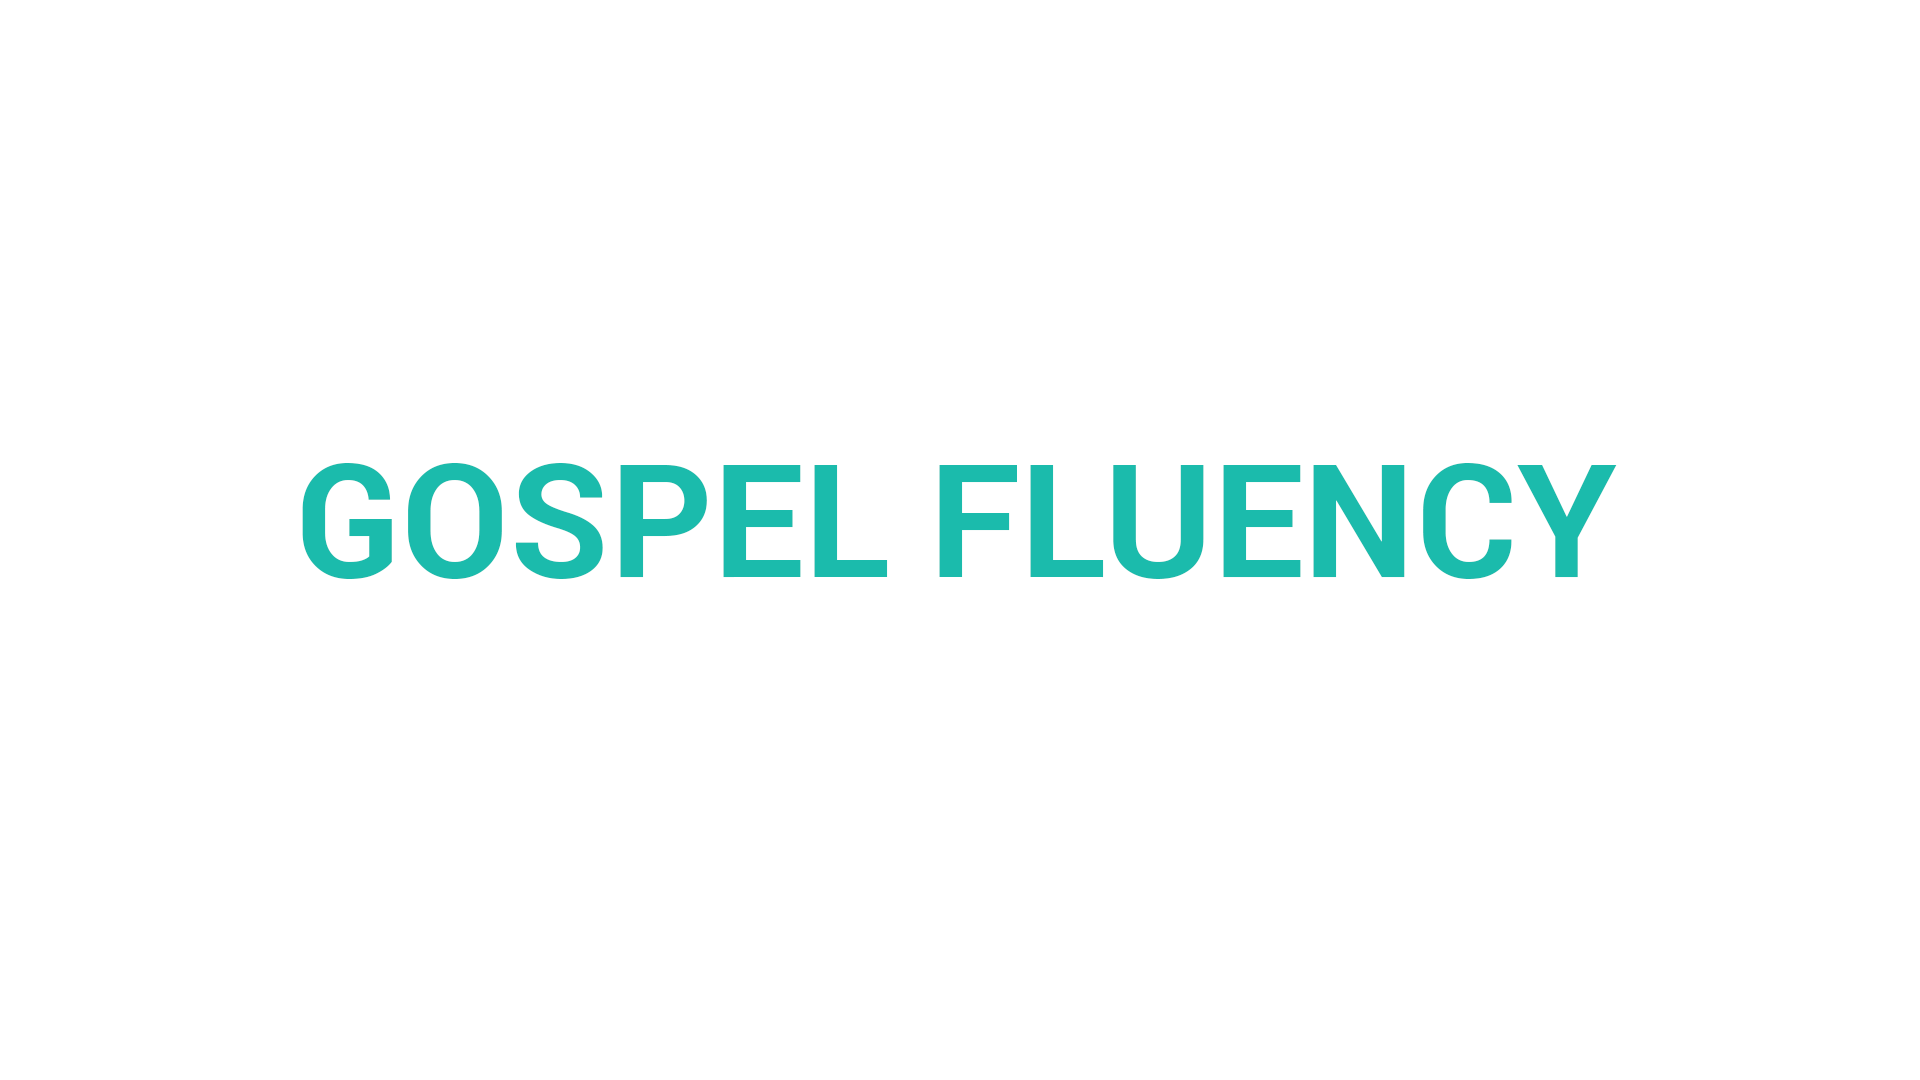 What is Gospel Fluency